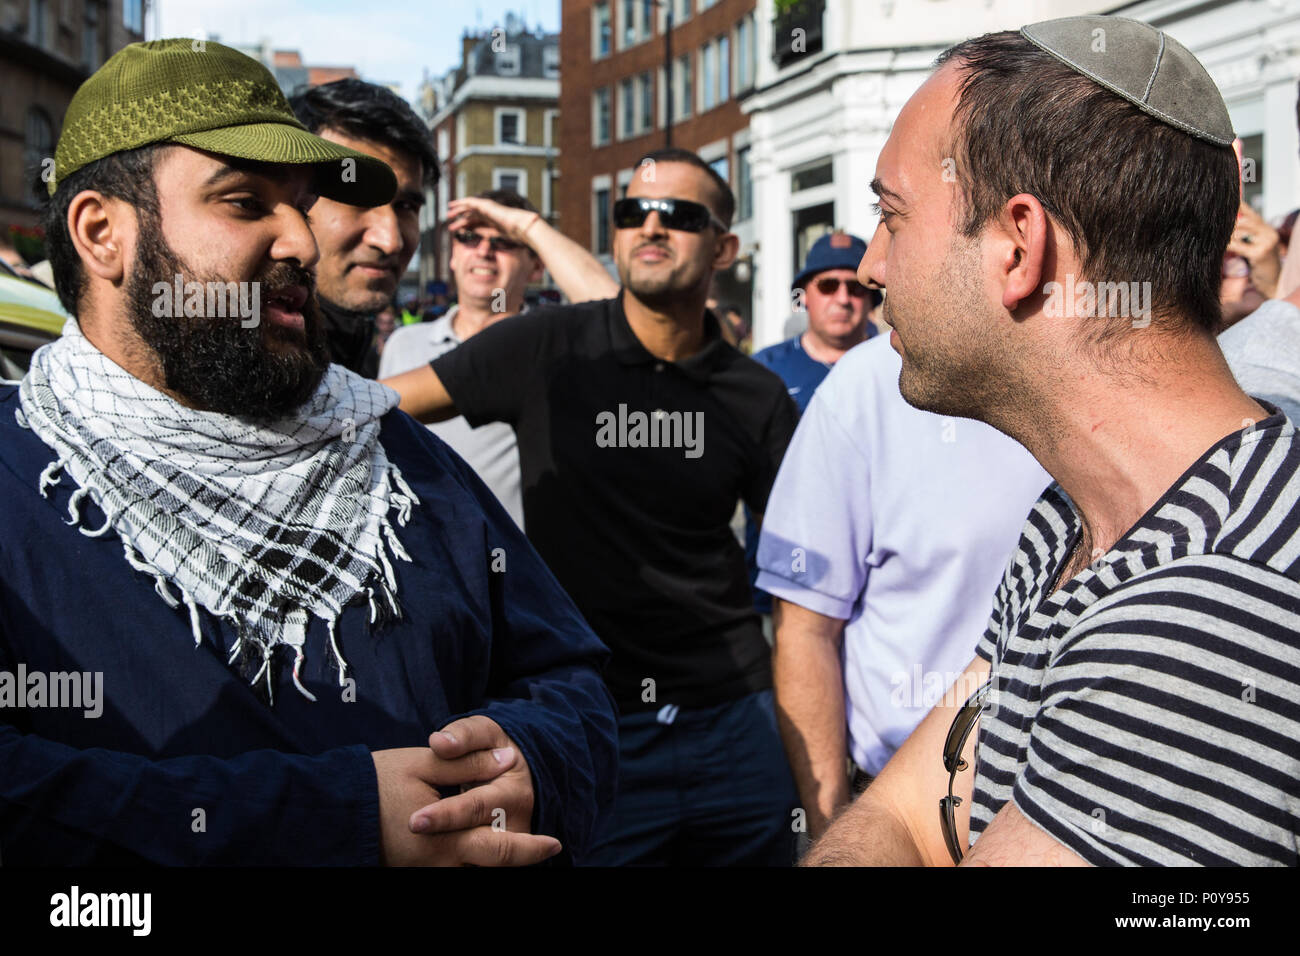 London, UK. 10th June, 2018. Pro-Palestinian and pro-Israel activists debate in the street before the pro-Palestinian Al Quds Day march through central London organised by the Islamic Human Rights Commission. An international event, it began in Iran in 1979. Quds is the Arabic name for Jerusalem. Credit: Mark Kerrison/Alamy Live News - Stock Image